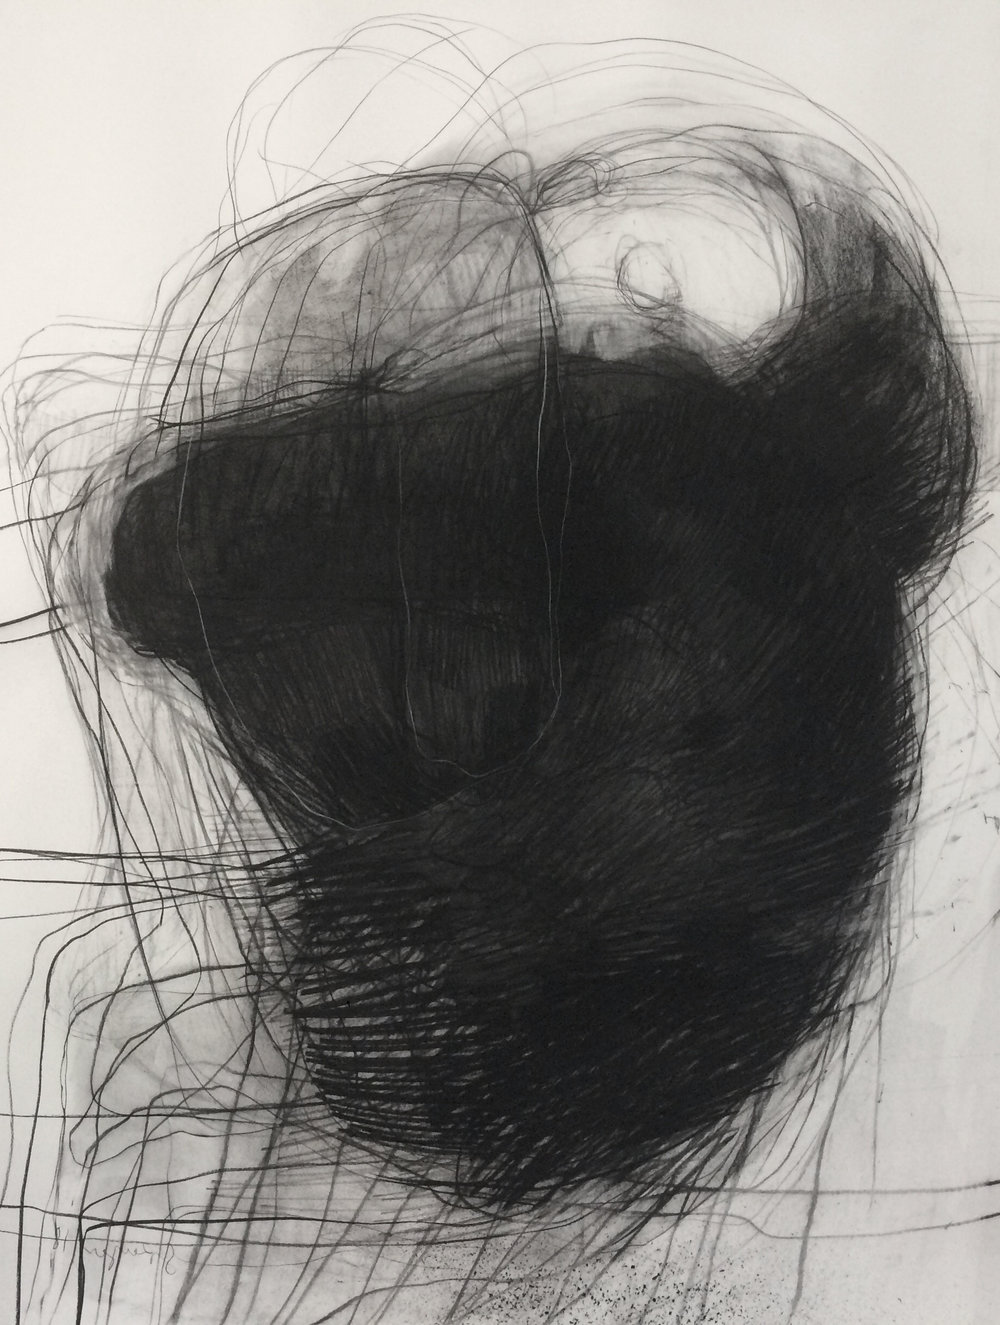 Charcoal and pastel, 2018, 114 x 84 cm